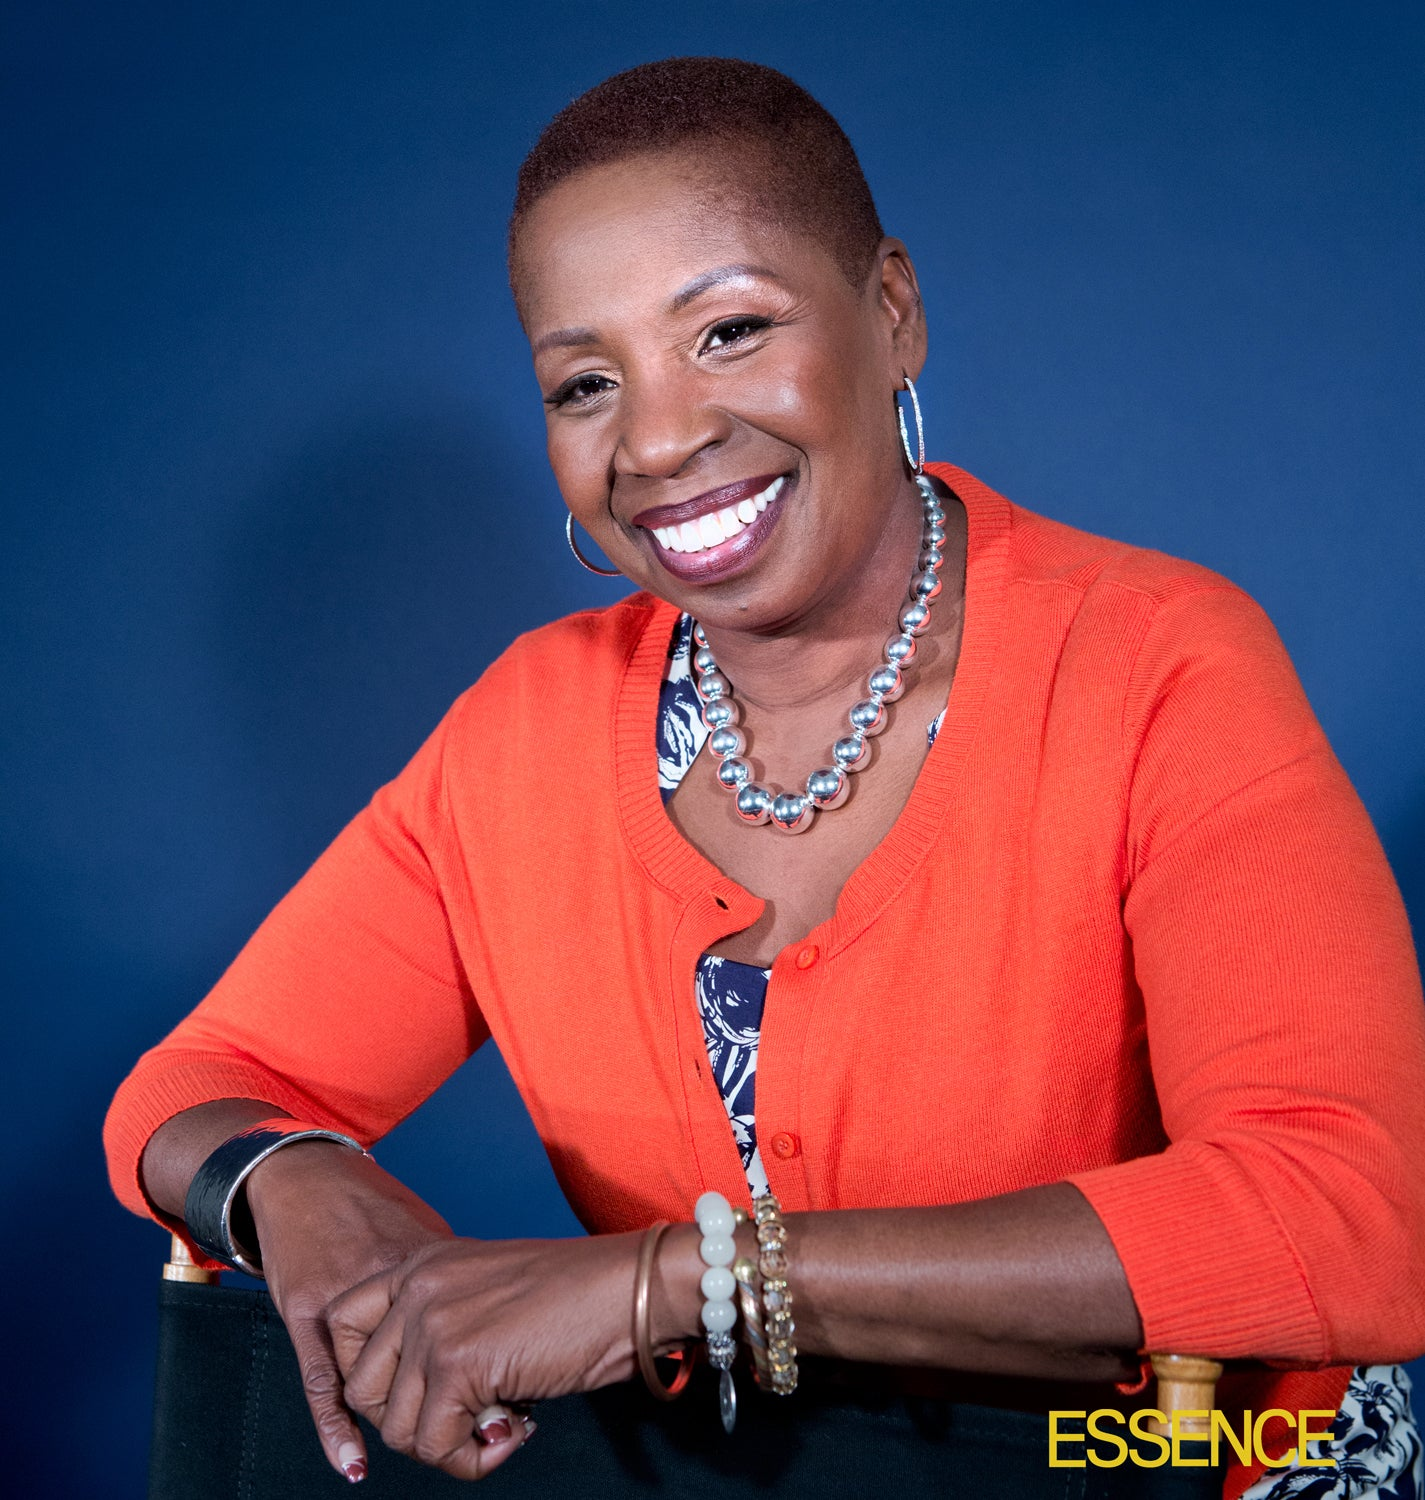 EXCLUSIVE: Iyanla Vanzant & Dr. Steve Perry on How 'Mama's Boys Become Baby Daddies'